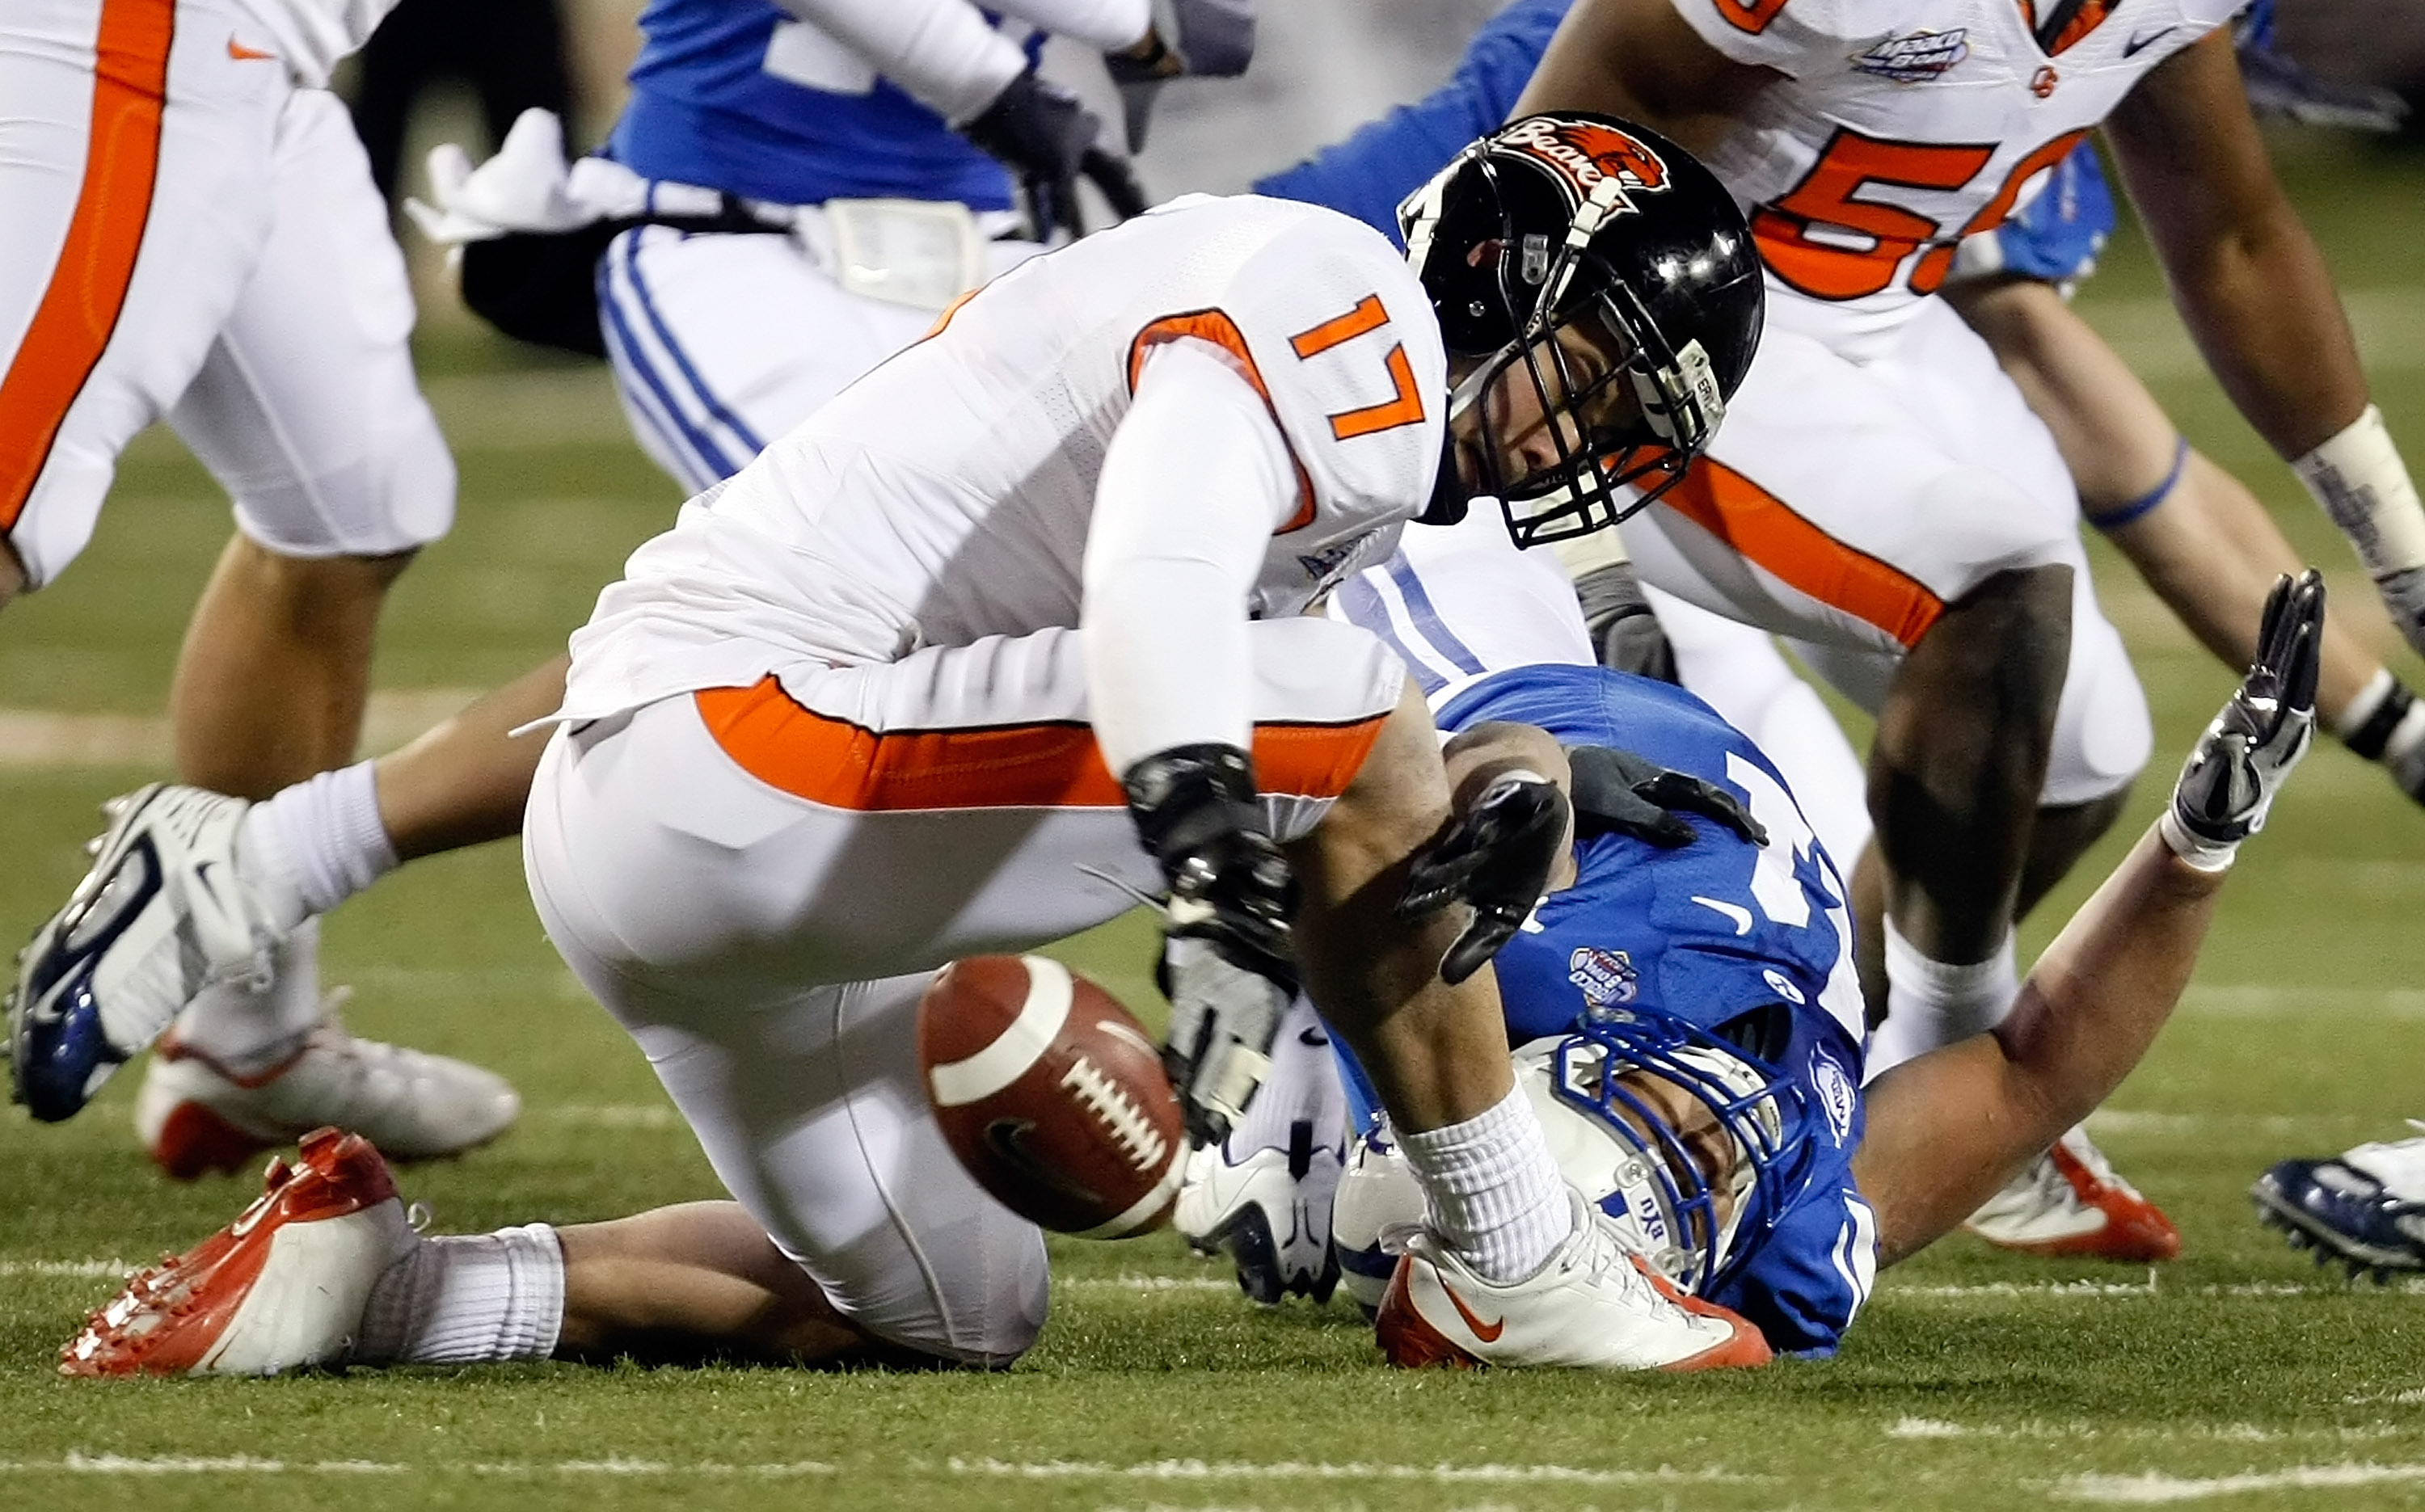 LAS VEGAS - DECEMBER 22:  Brandon Hardin #17 of the Oregon State Beavers tries to recover the ball after Manase Tonga #11 of the Brigham Young University Cougars dropped it during an onside kick by the Beavers during the fourth quarter of the MAACO Las Ve